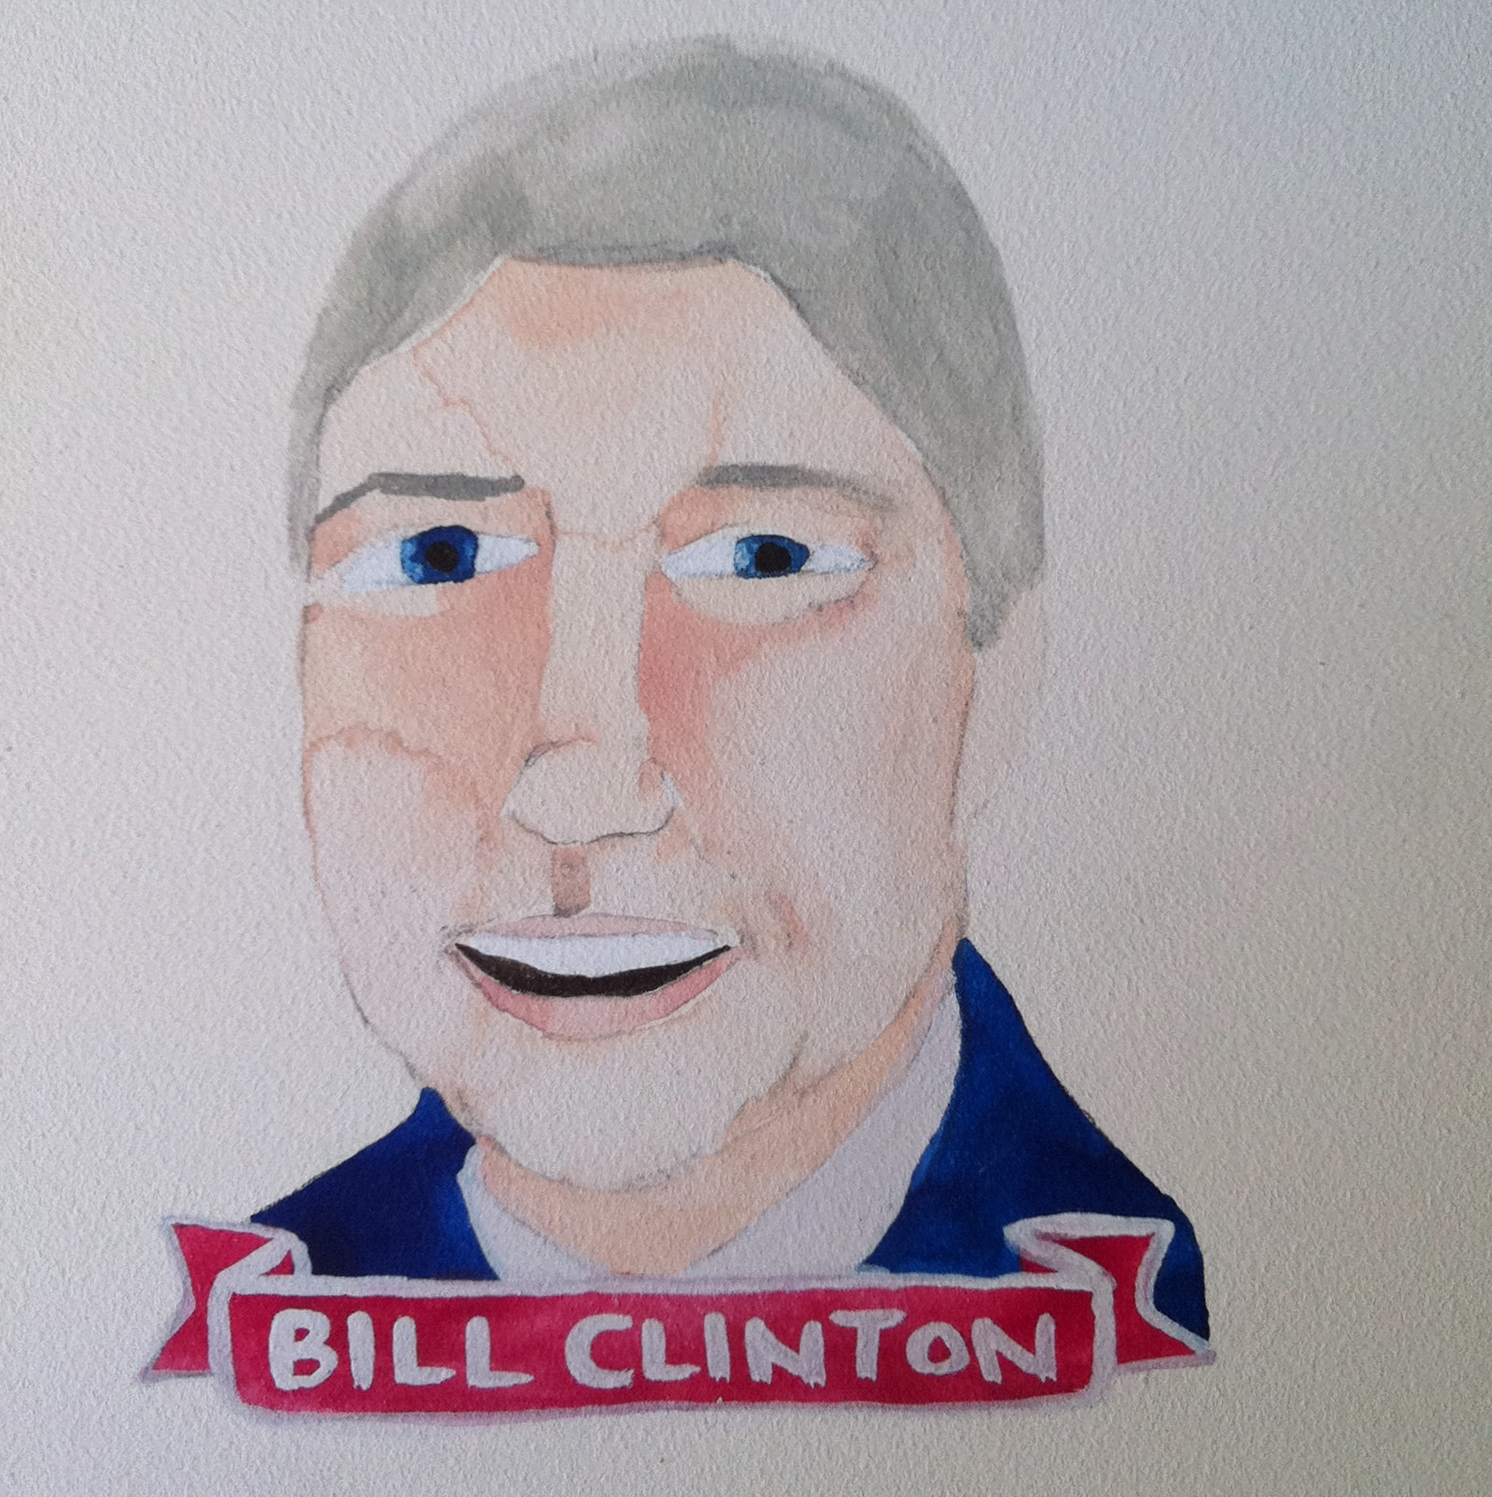 Talent Loves Company at Barbara Archer Gallery: 365 portraits by Lydia Walls - Bill Clinton